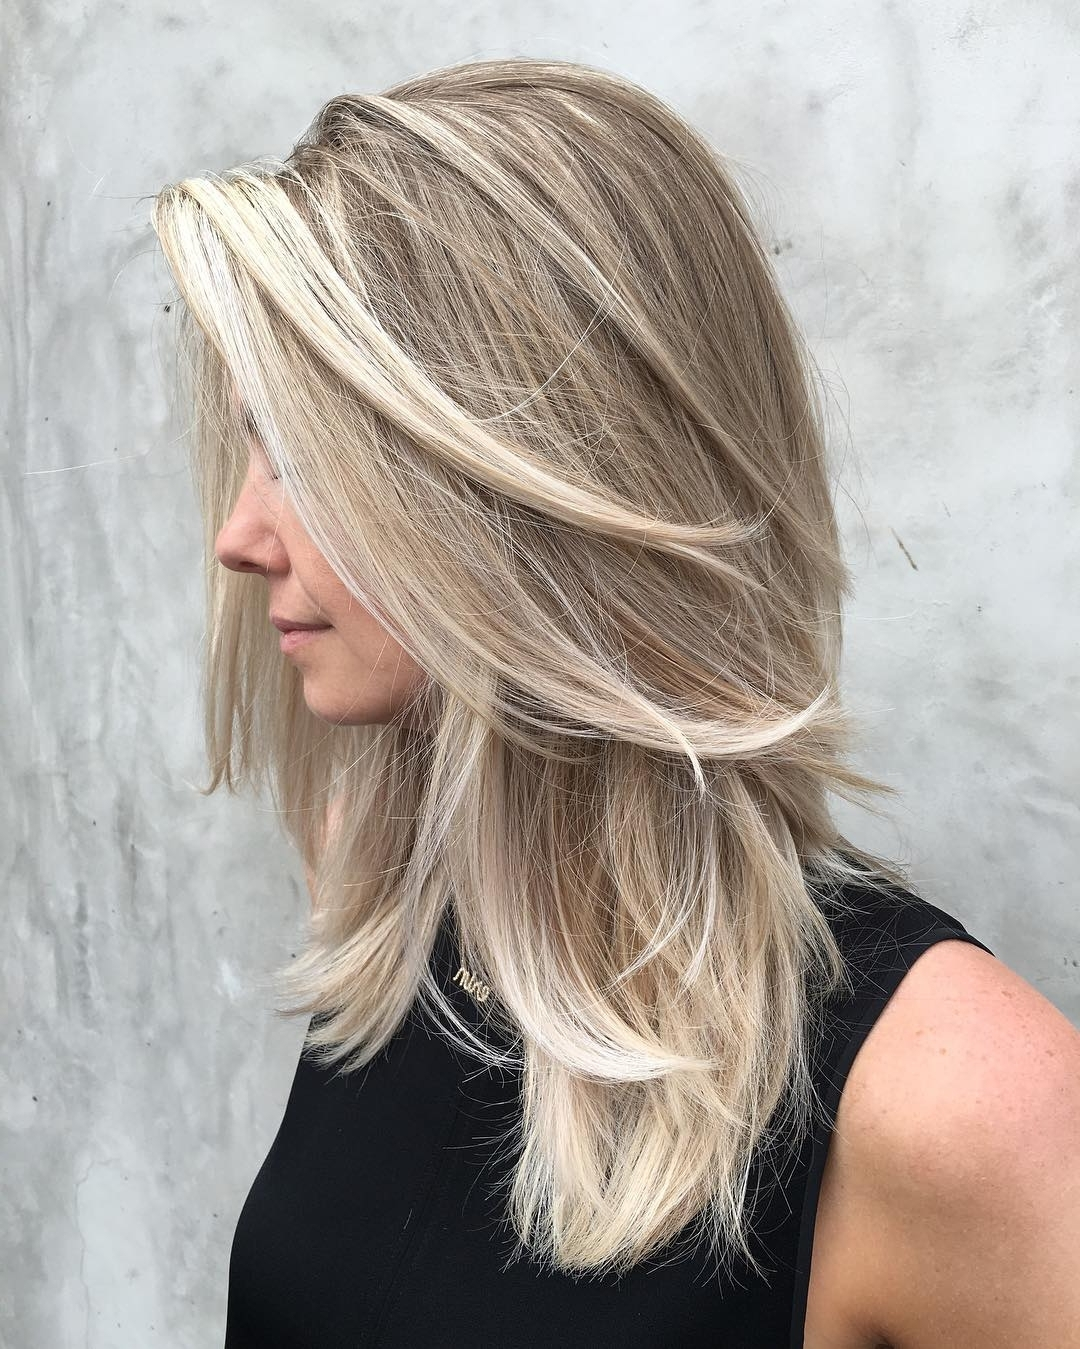 20 Beautiful Blonde Hairstyles To Play Around With With Regard To Most Up To Date Dishwater Waves Blonde Hairstyles (View 13 of 20)